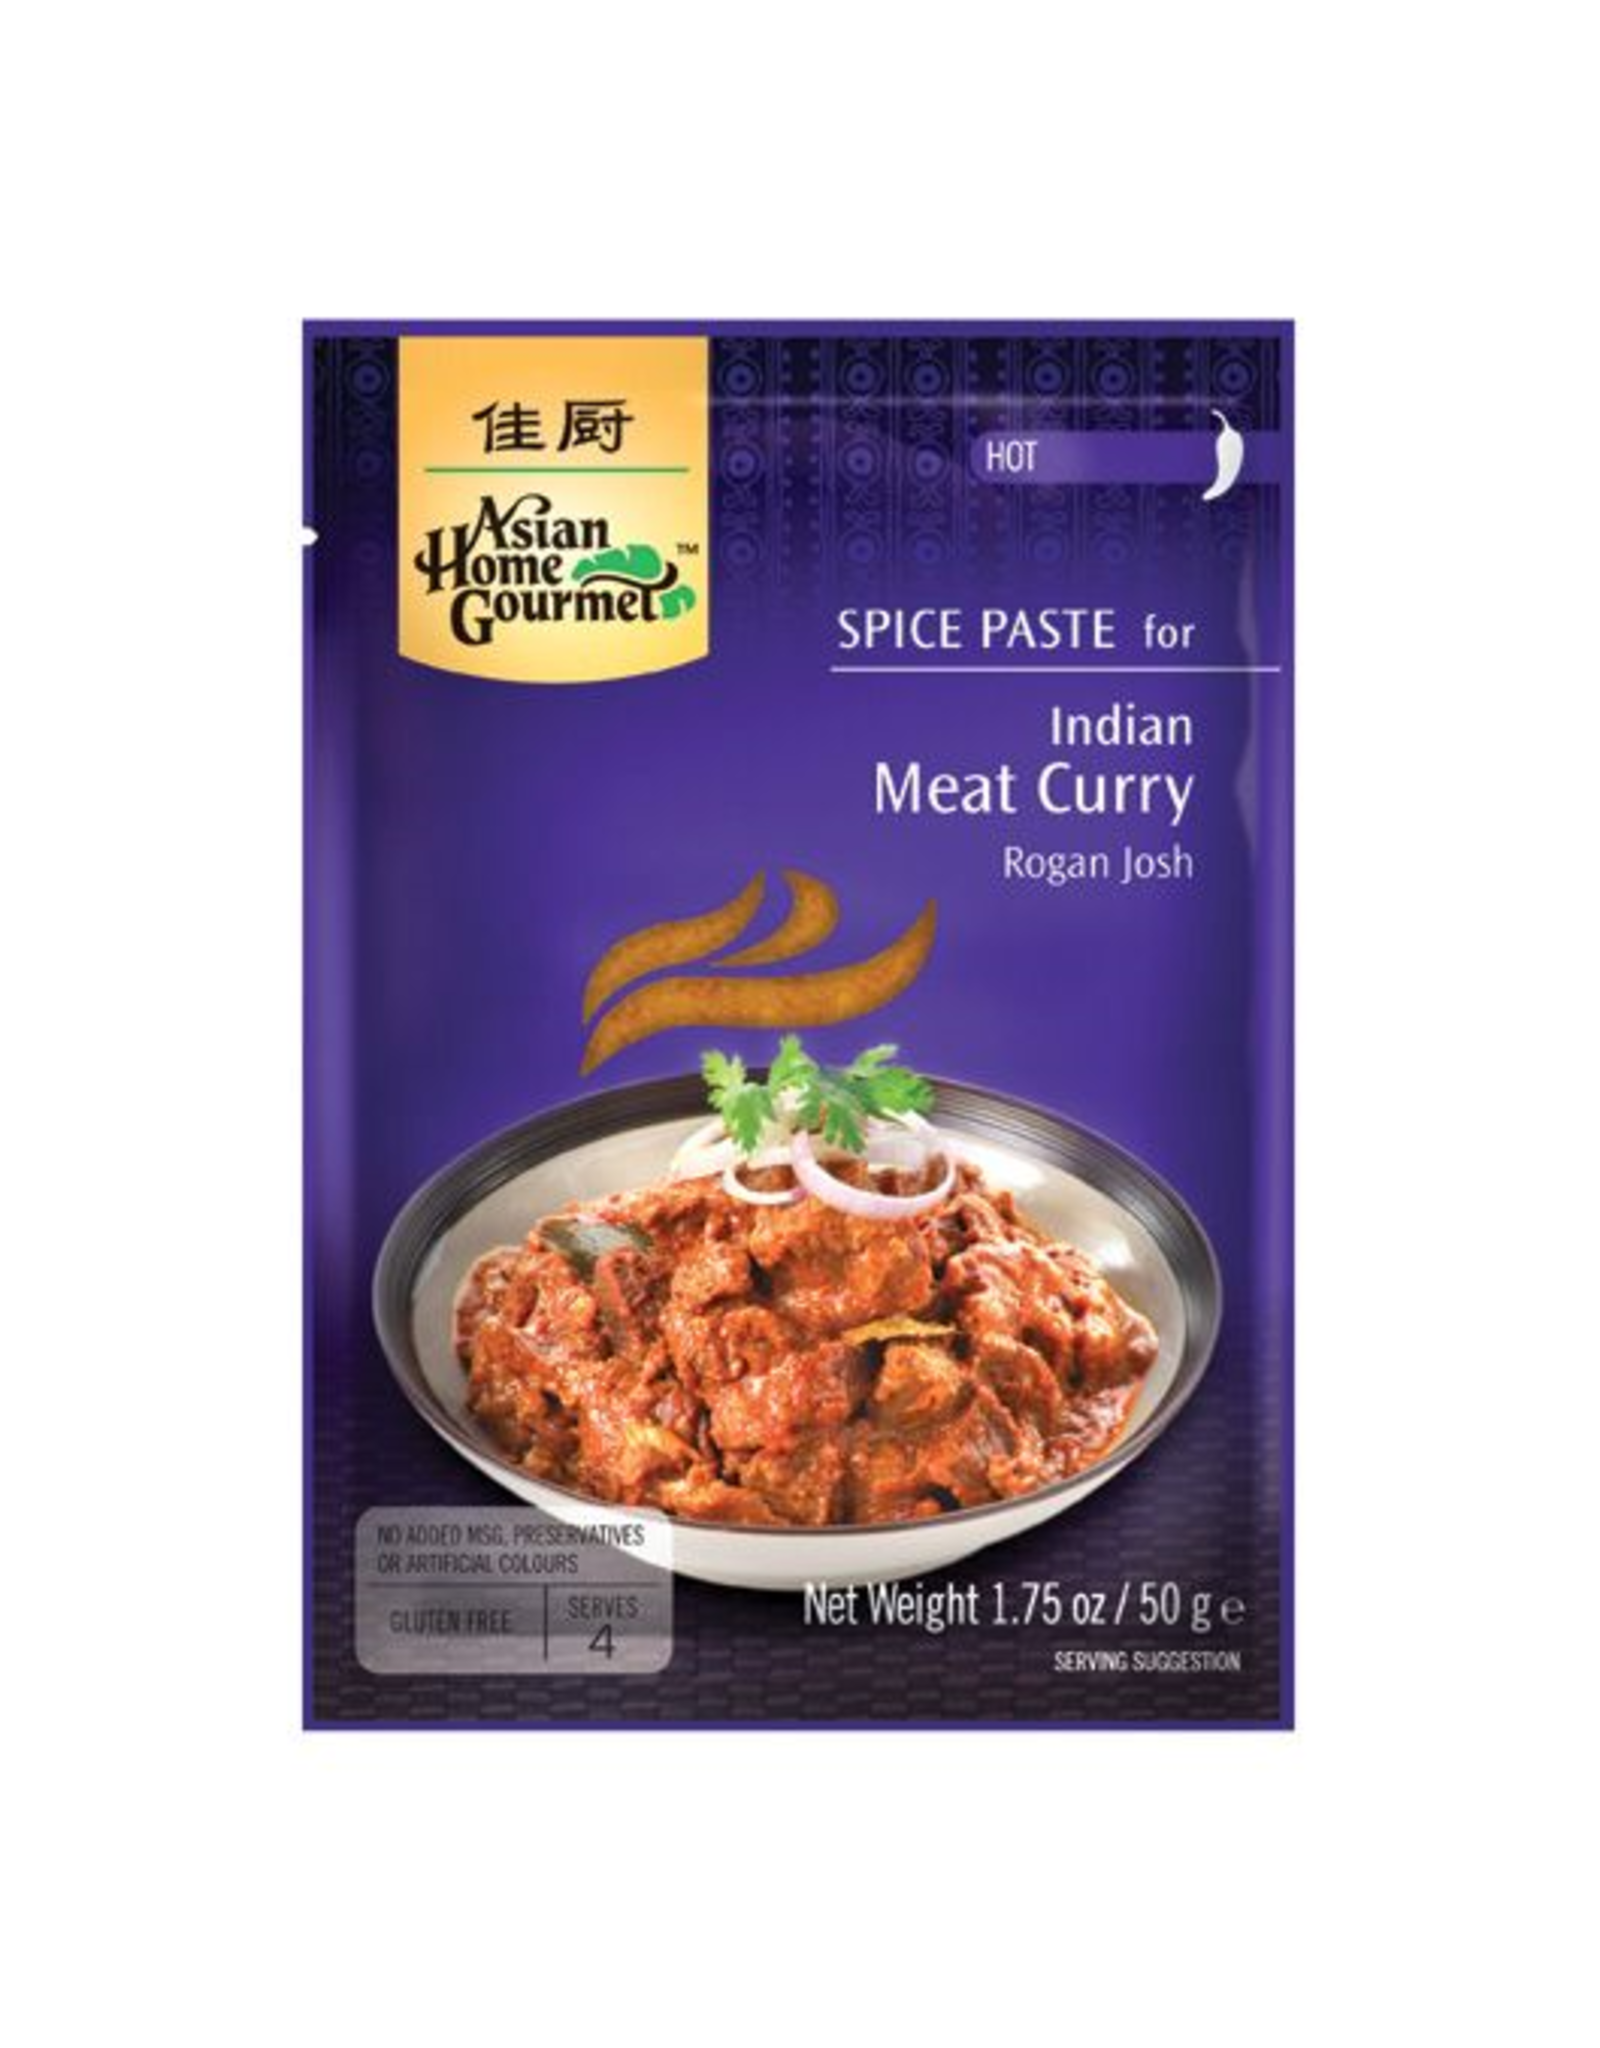 Asian Home Gourmet Indian Meat Curry